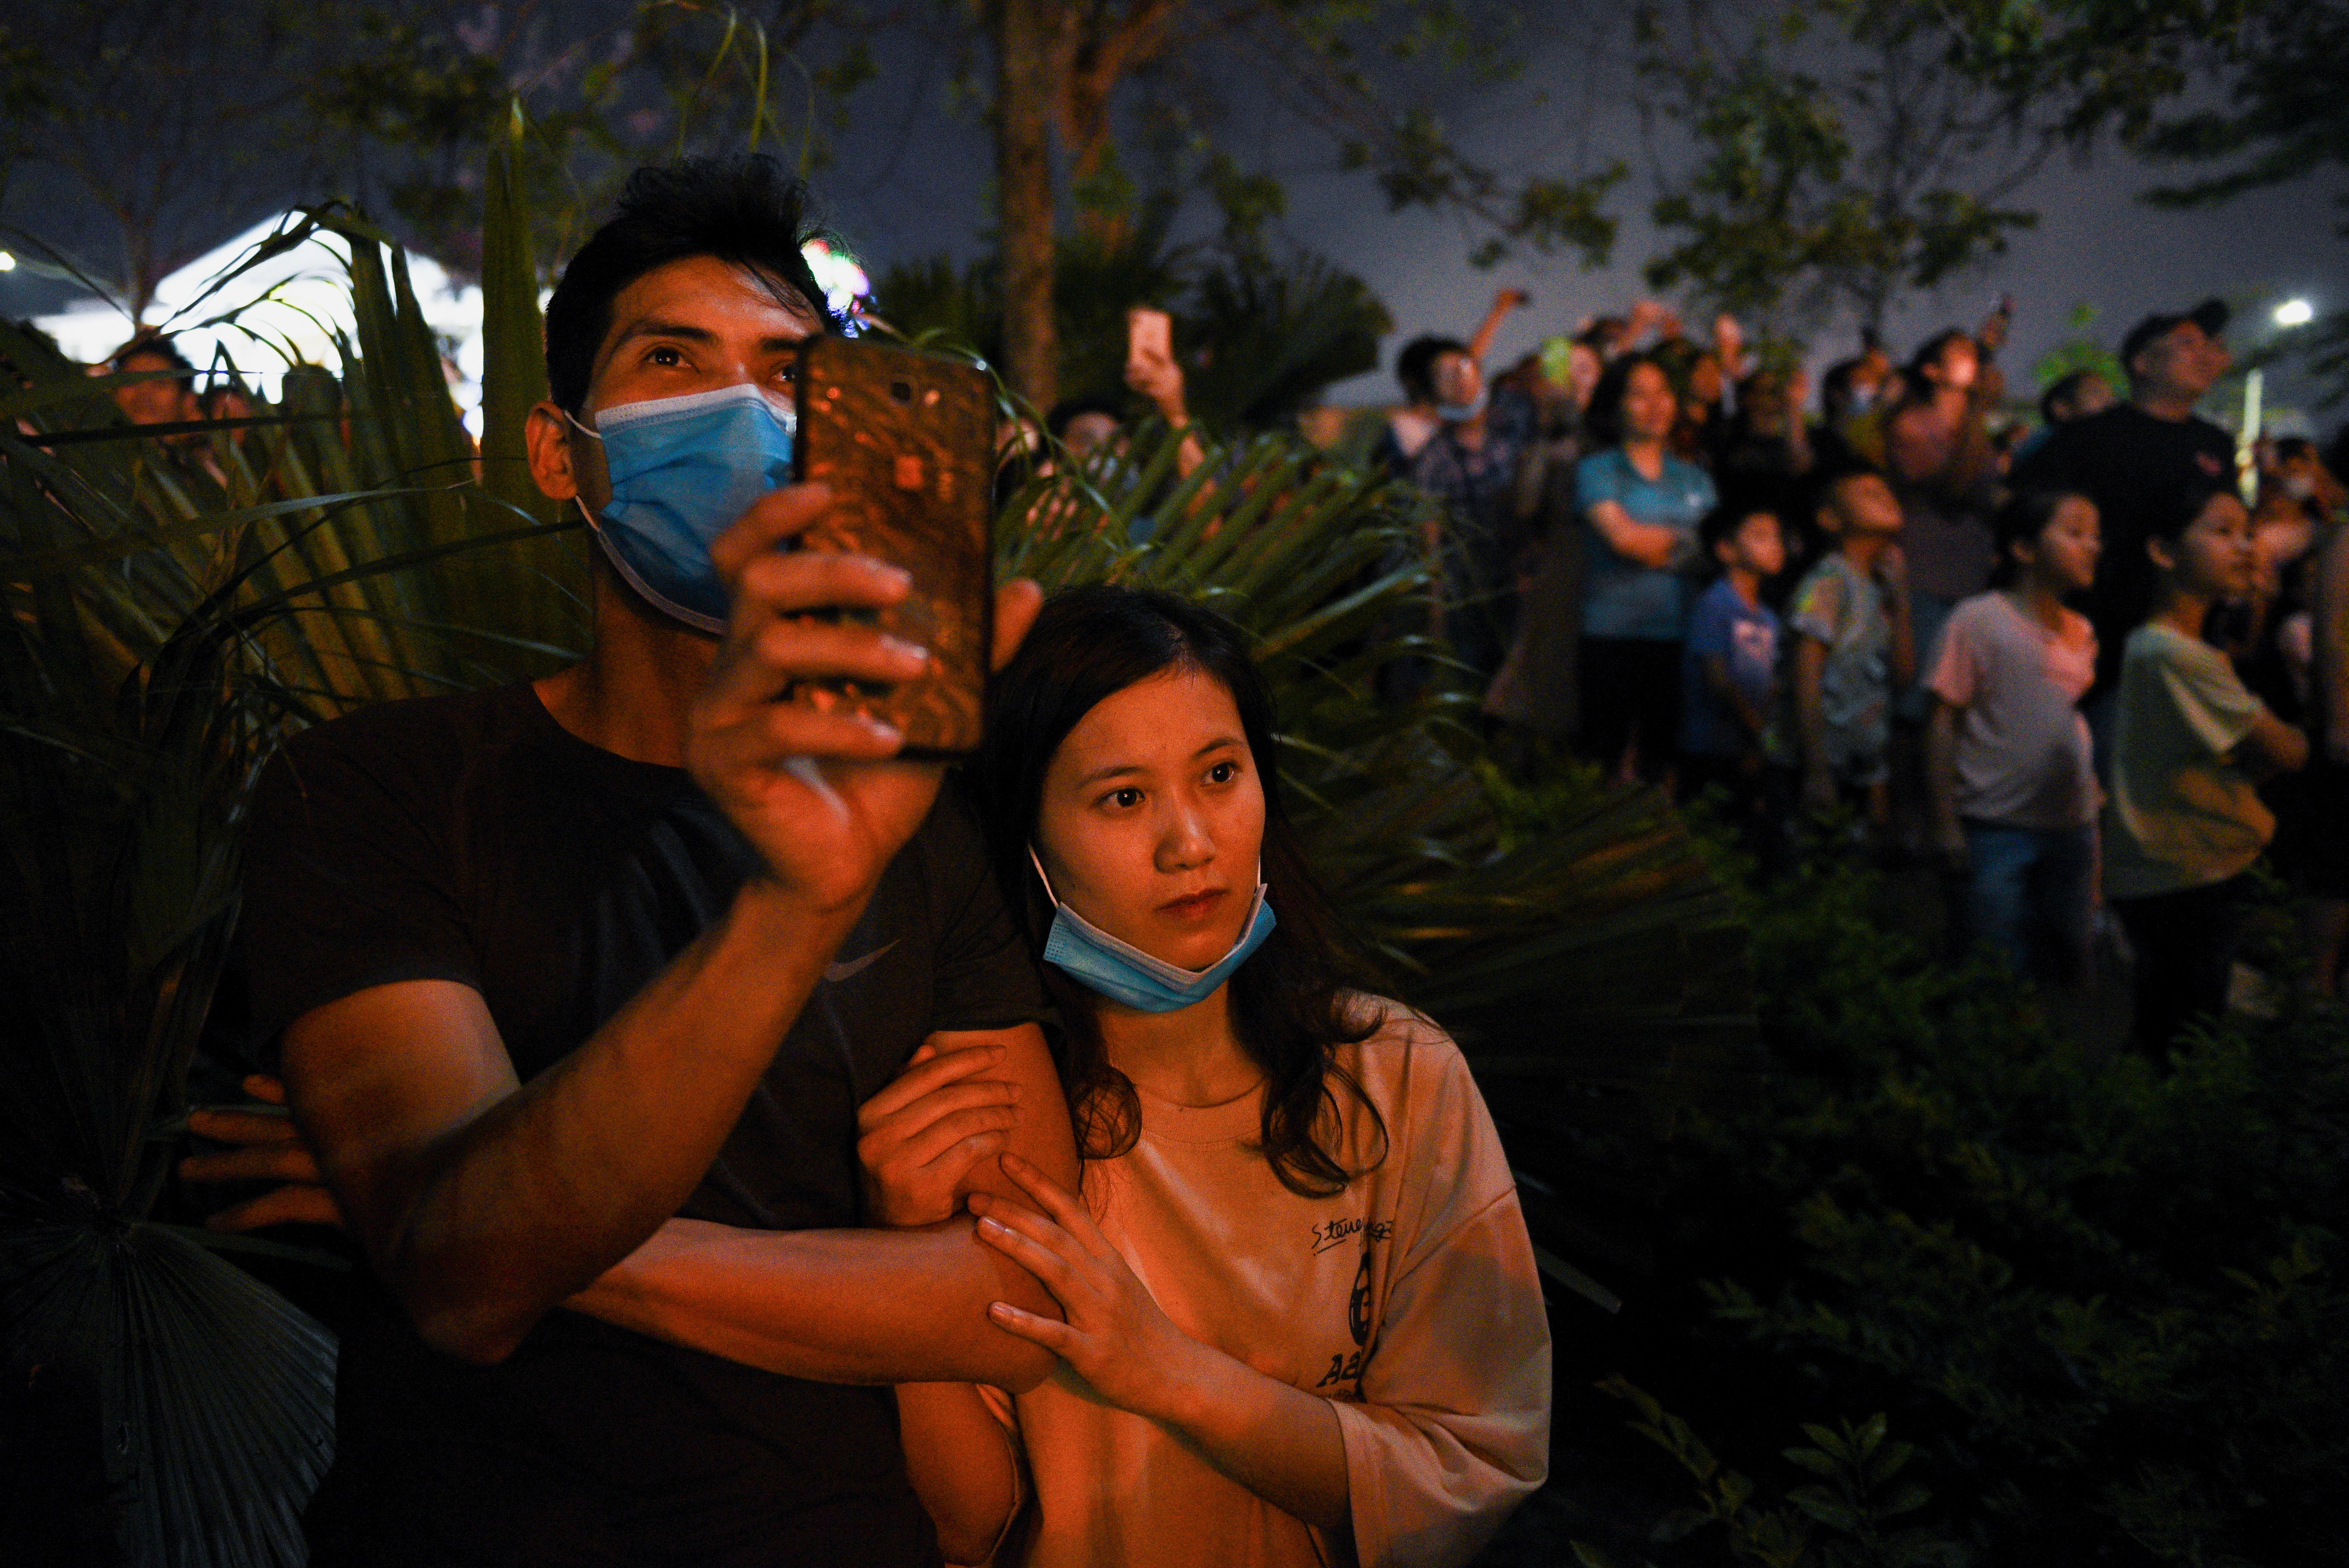 People attend a music show during Hung Kings' Festival in a first massive gathering, after coronavirus disease (COVID-19) restrictions were lifted, in Phu Tho province, Vietnam, April 20, 2021. REUTERS/Thanh Hue